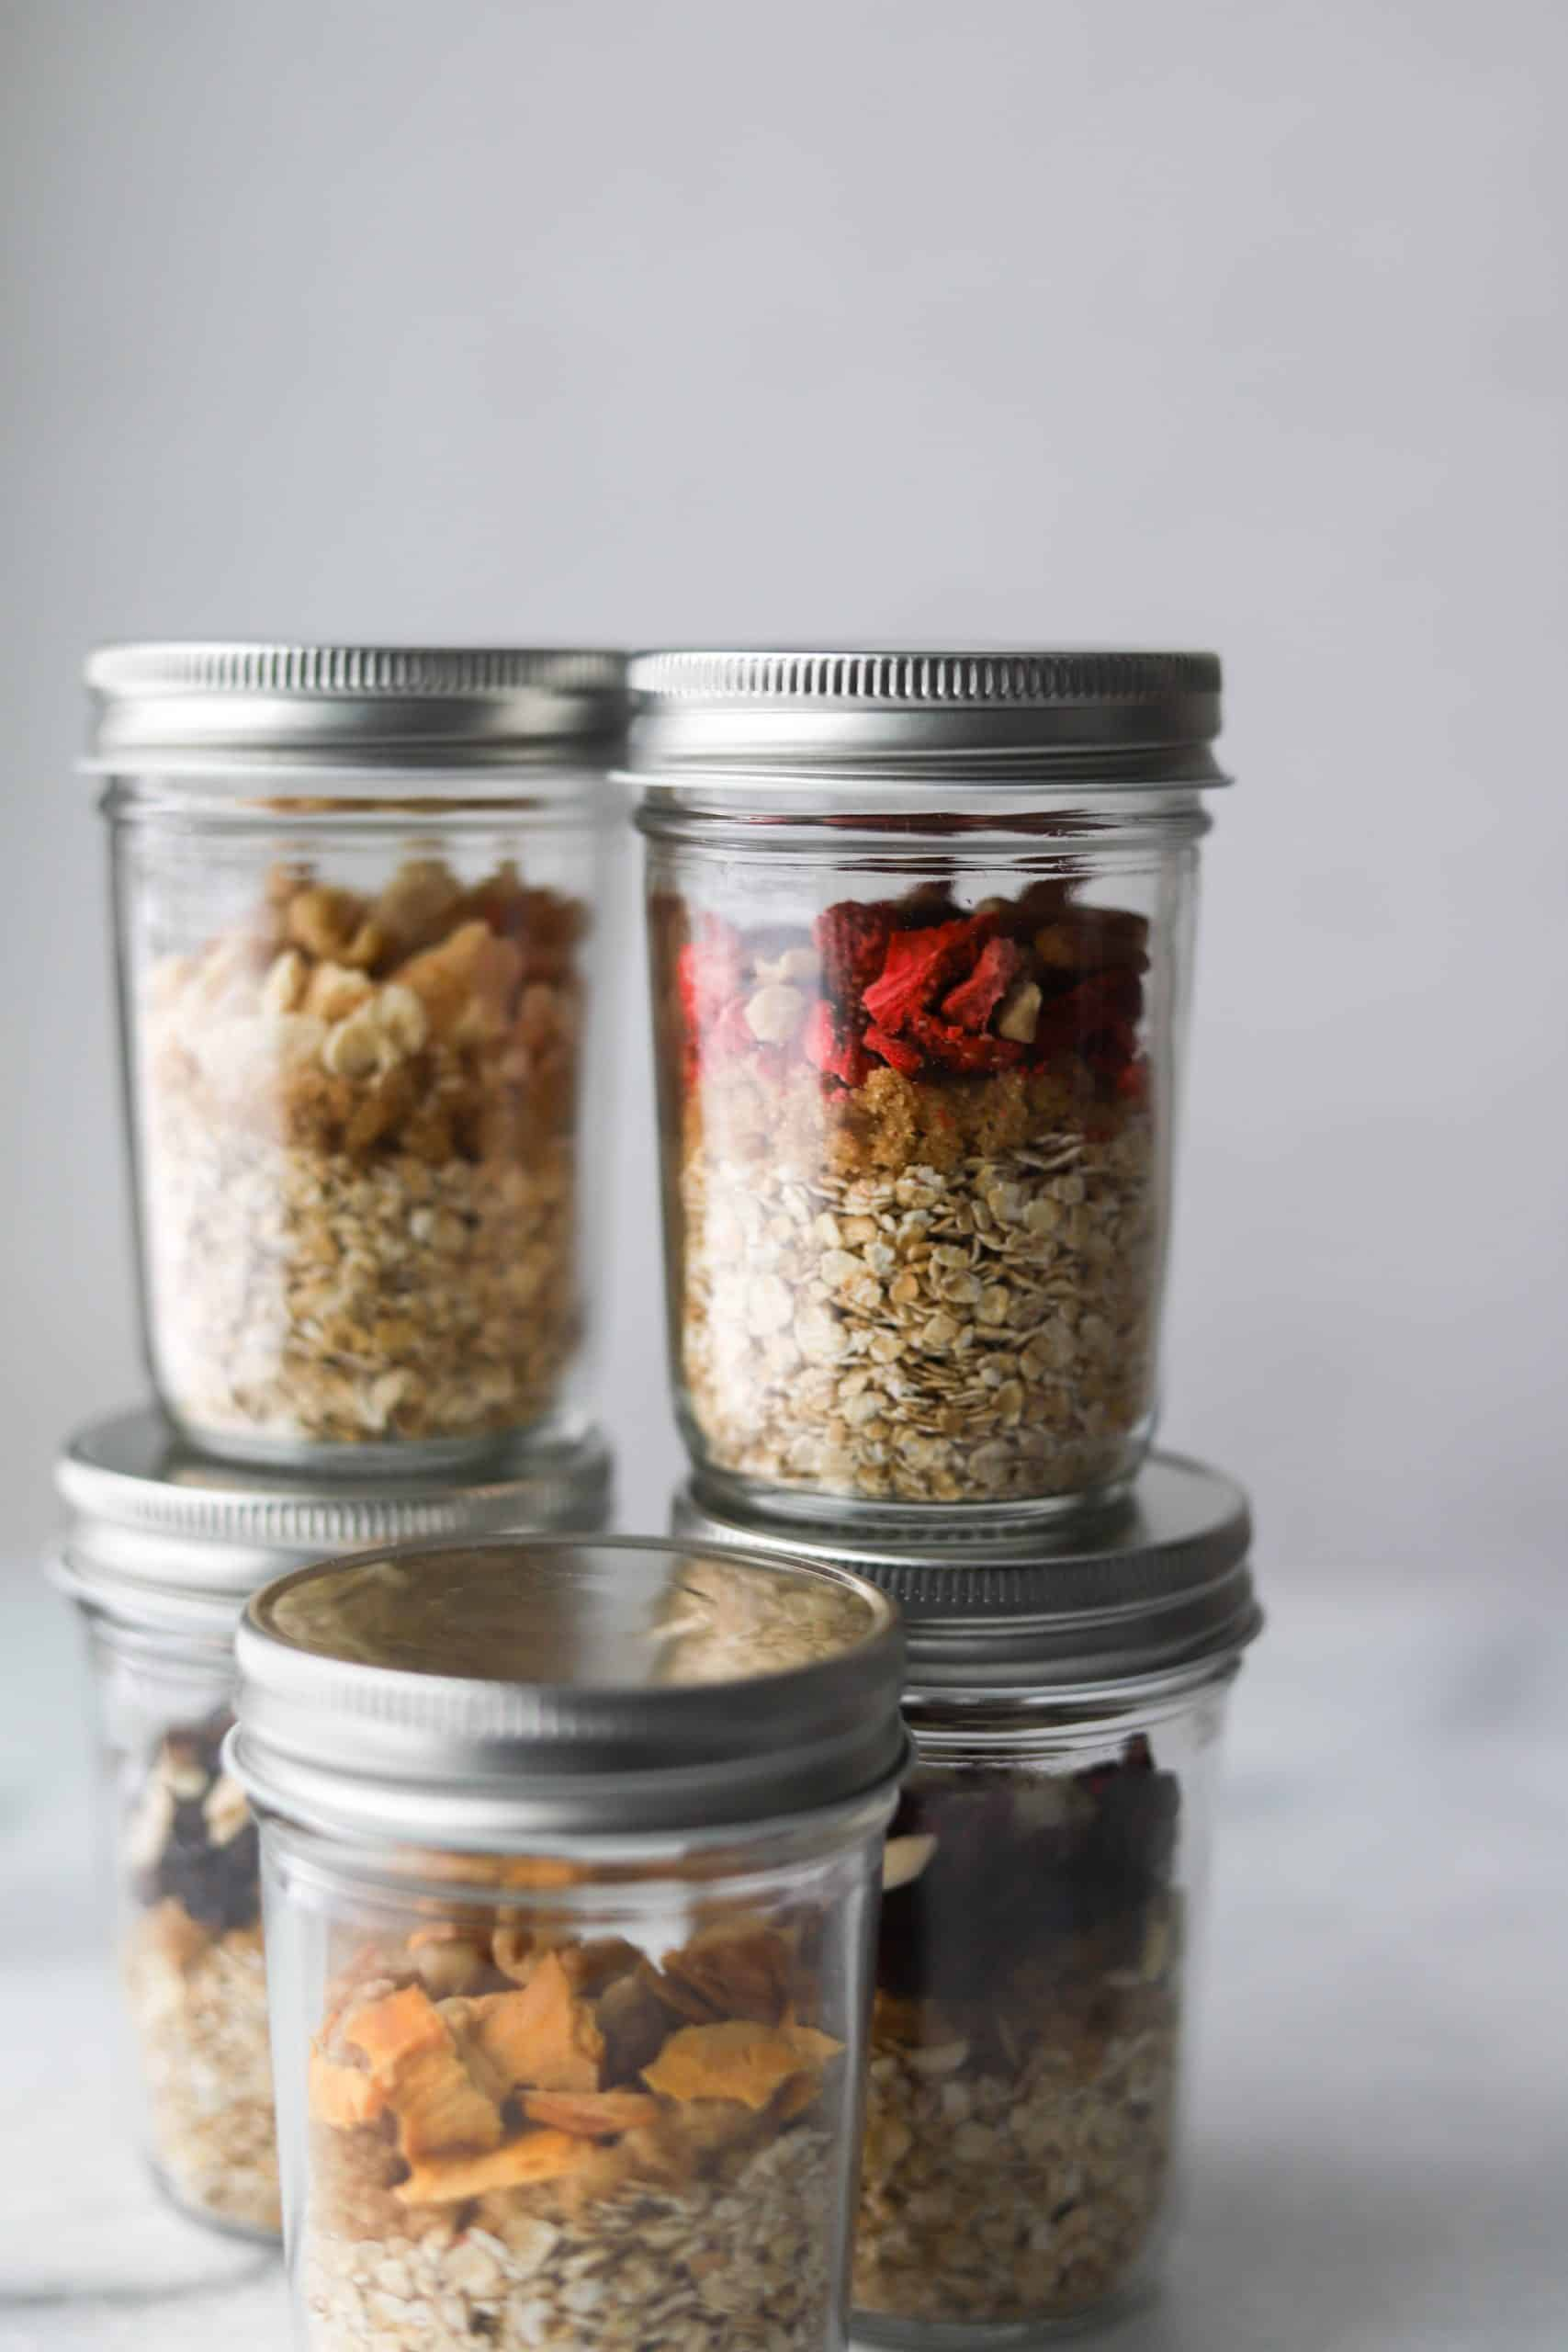 Jars filled with oatmeal cup ingredients on a white marble backdrop.